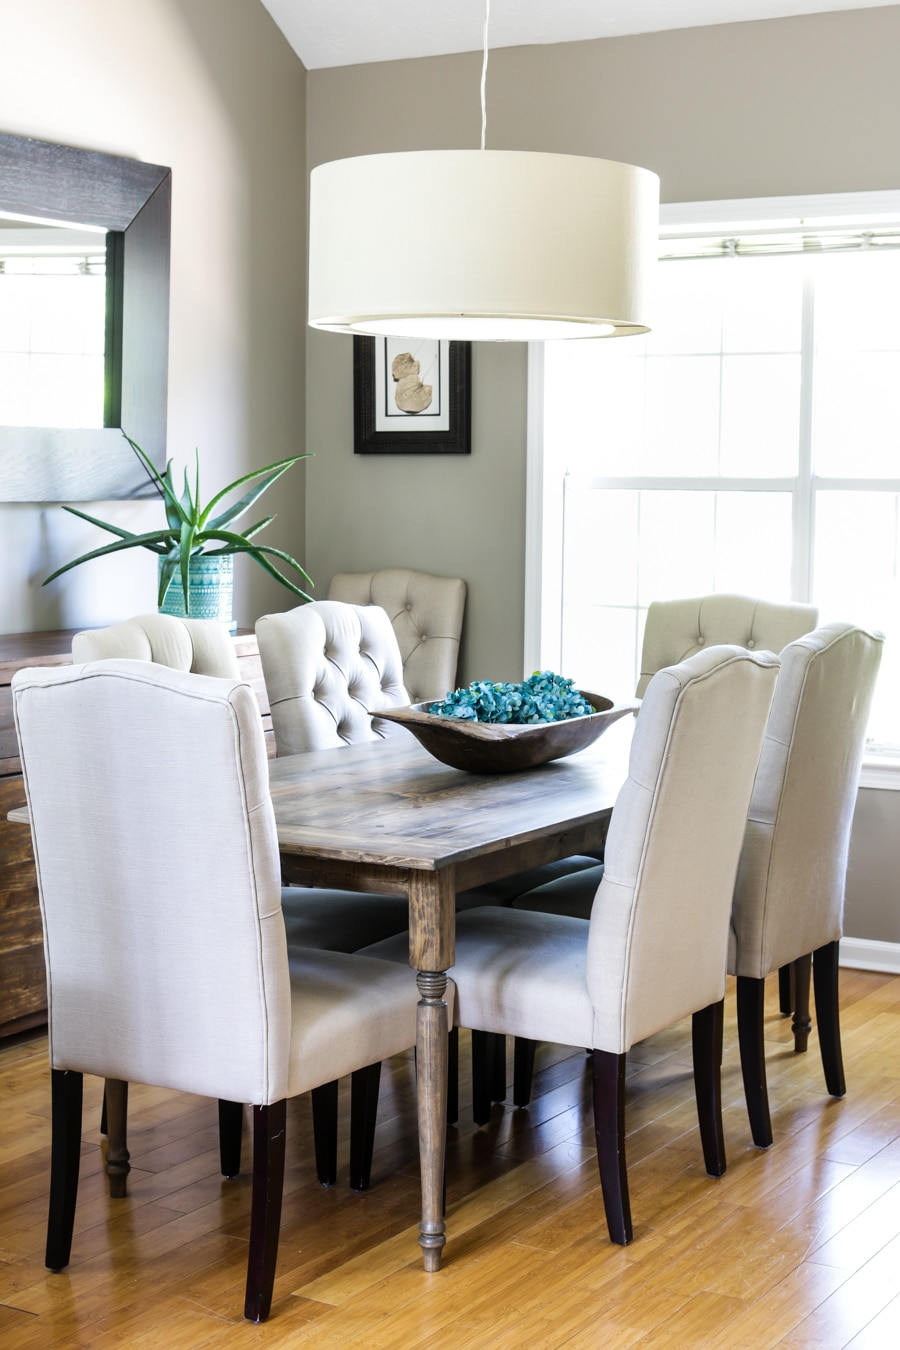 How To Build A Diy Farmhouse Table In 5 Easy Steps